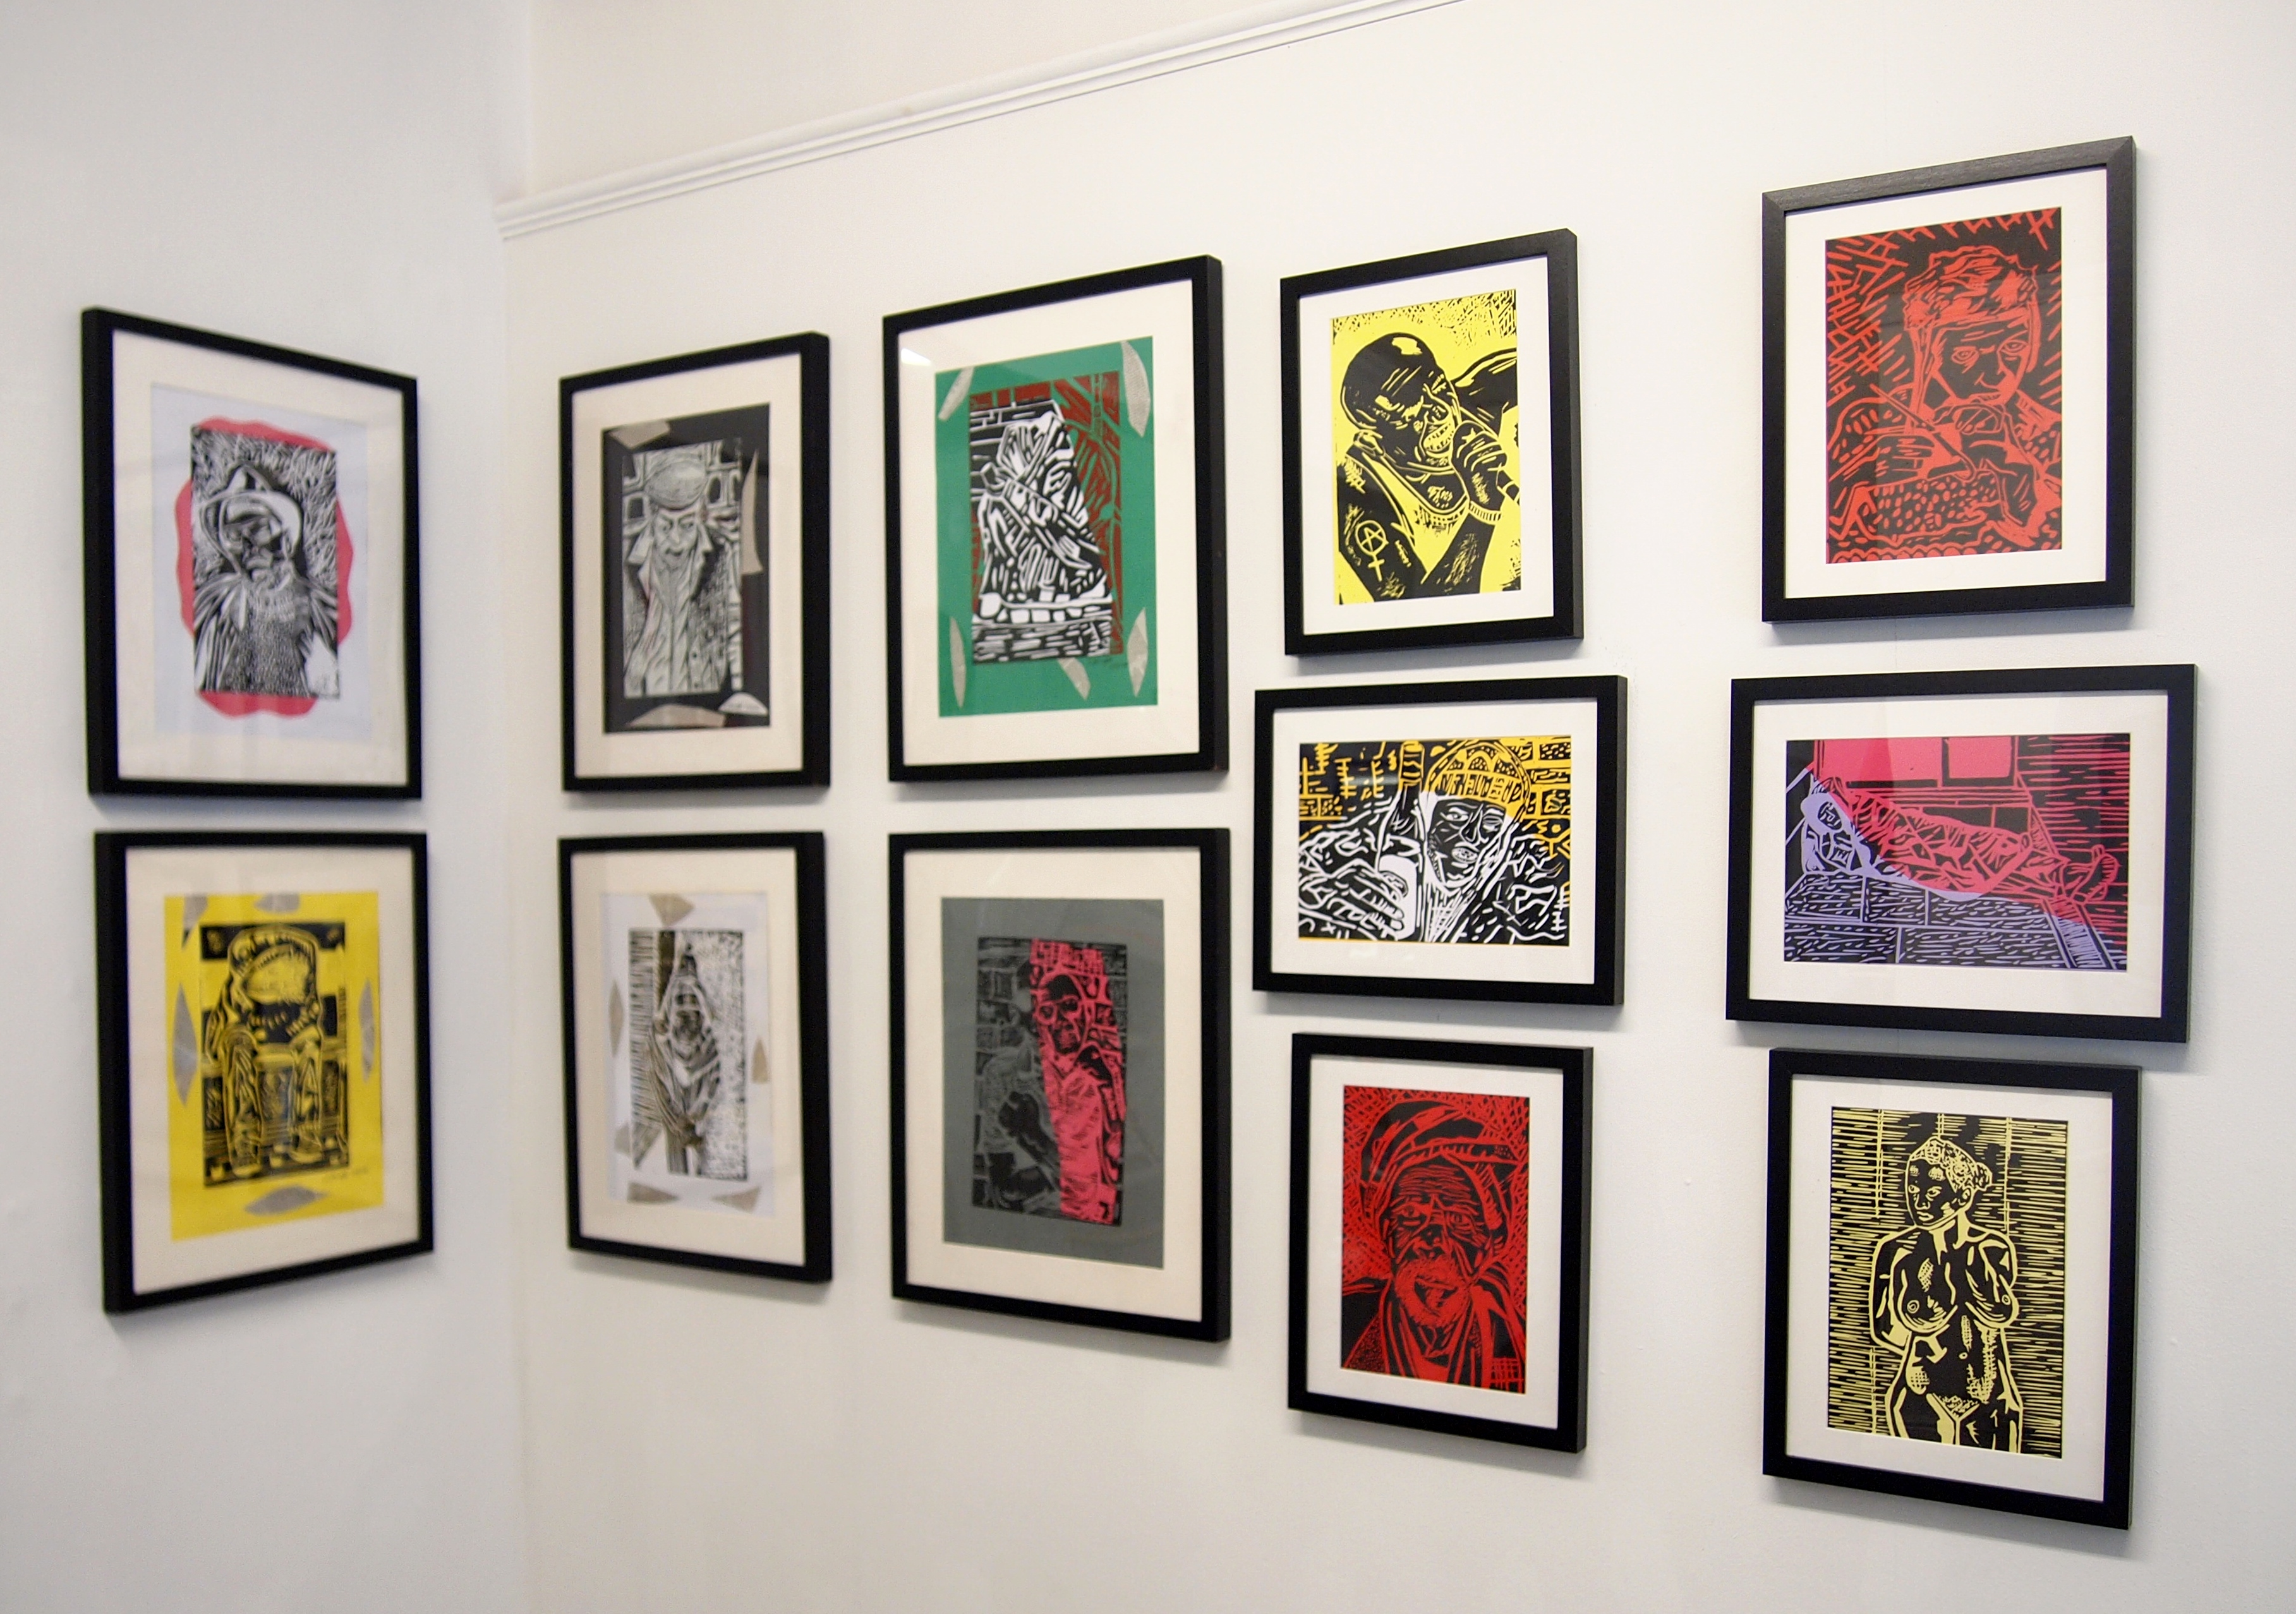 Hal A. Wright, printmaker and photographer